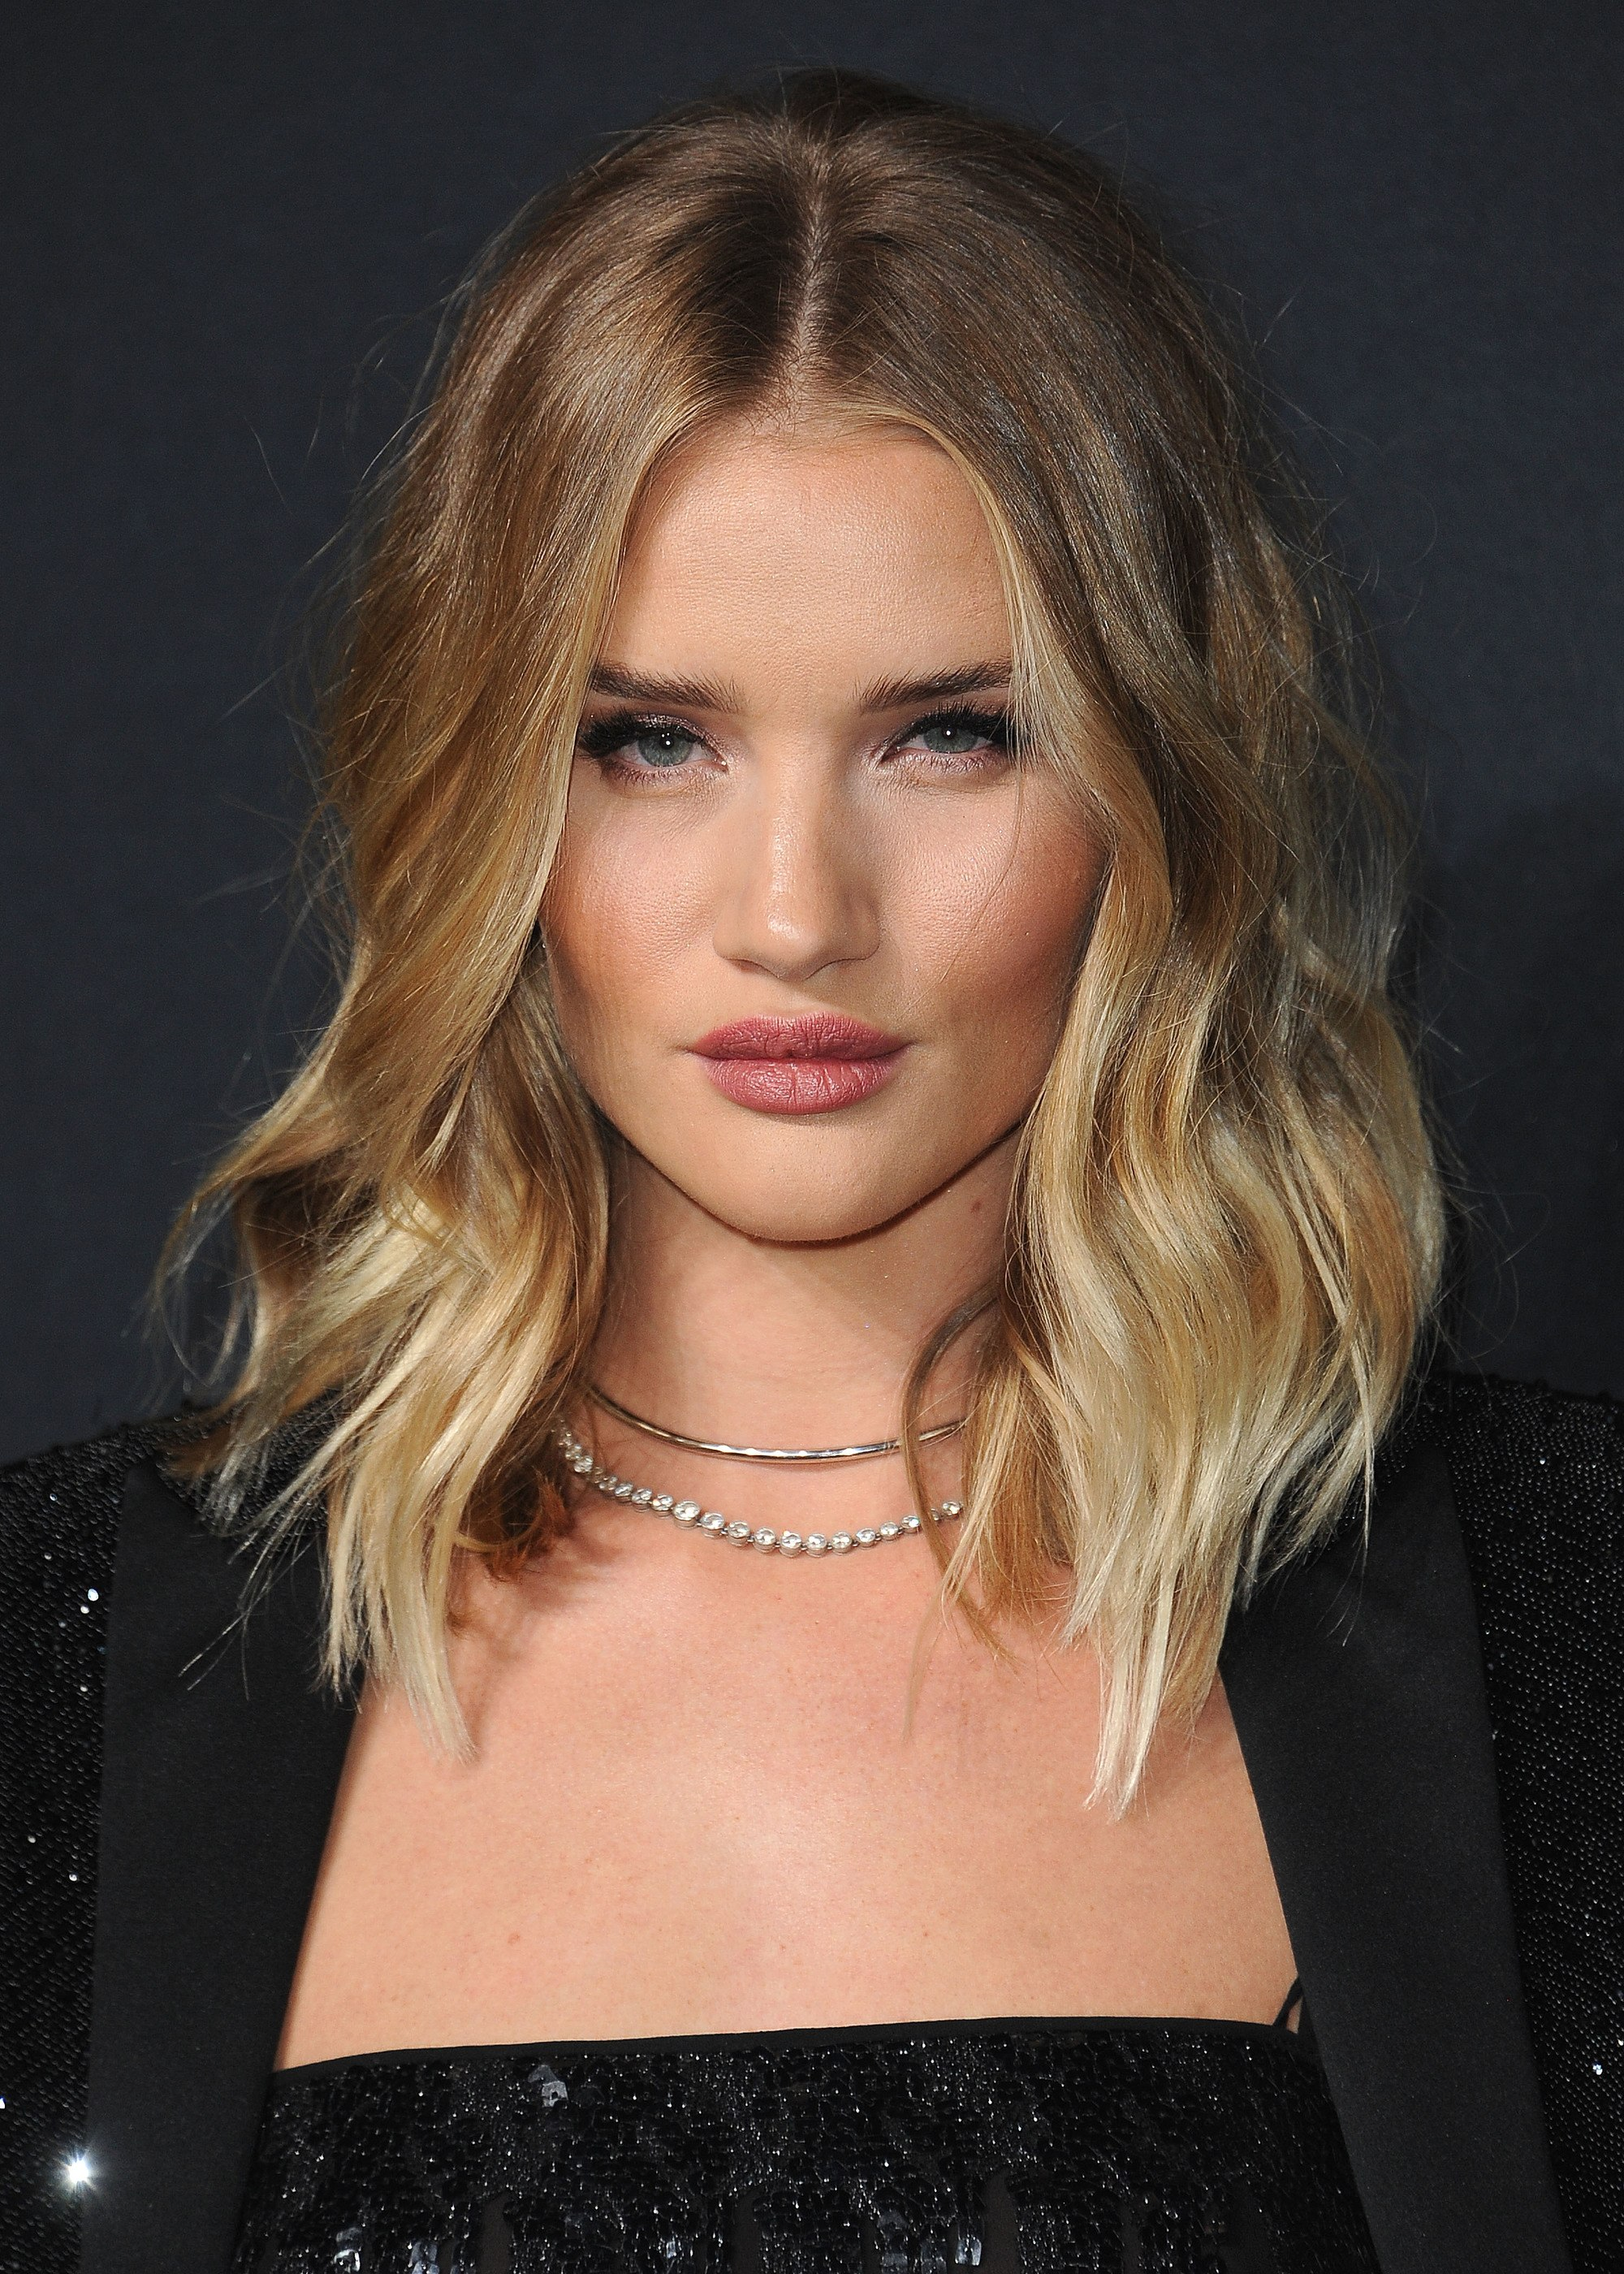 Medium hairstyles for thick hair: Rosie Huntington-Whiteley with a wavy blonde ombre long A-line bob